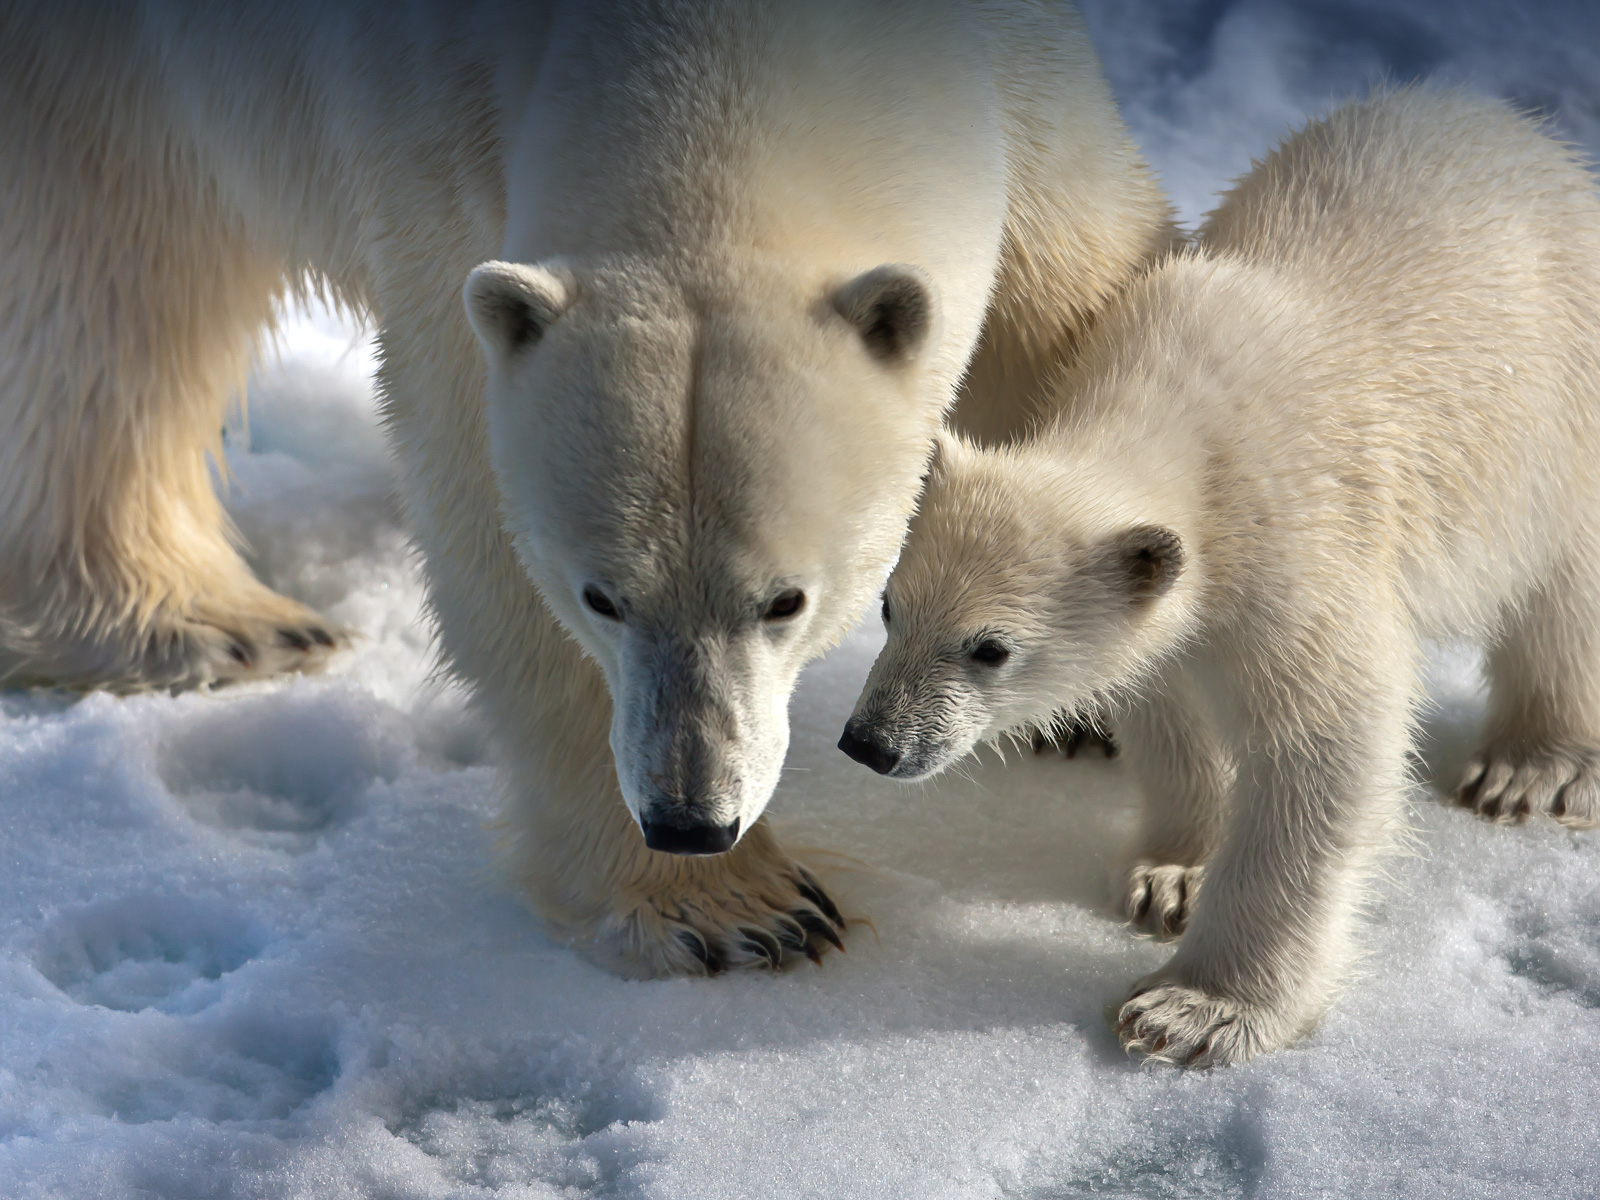 A female polar bear teaches her cub important Arctic survival skills in its first months out of the den